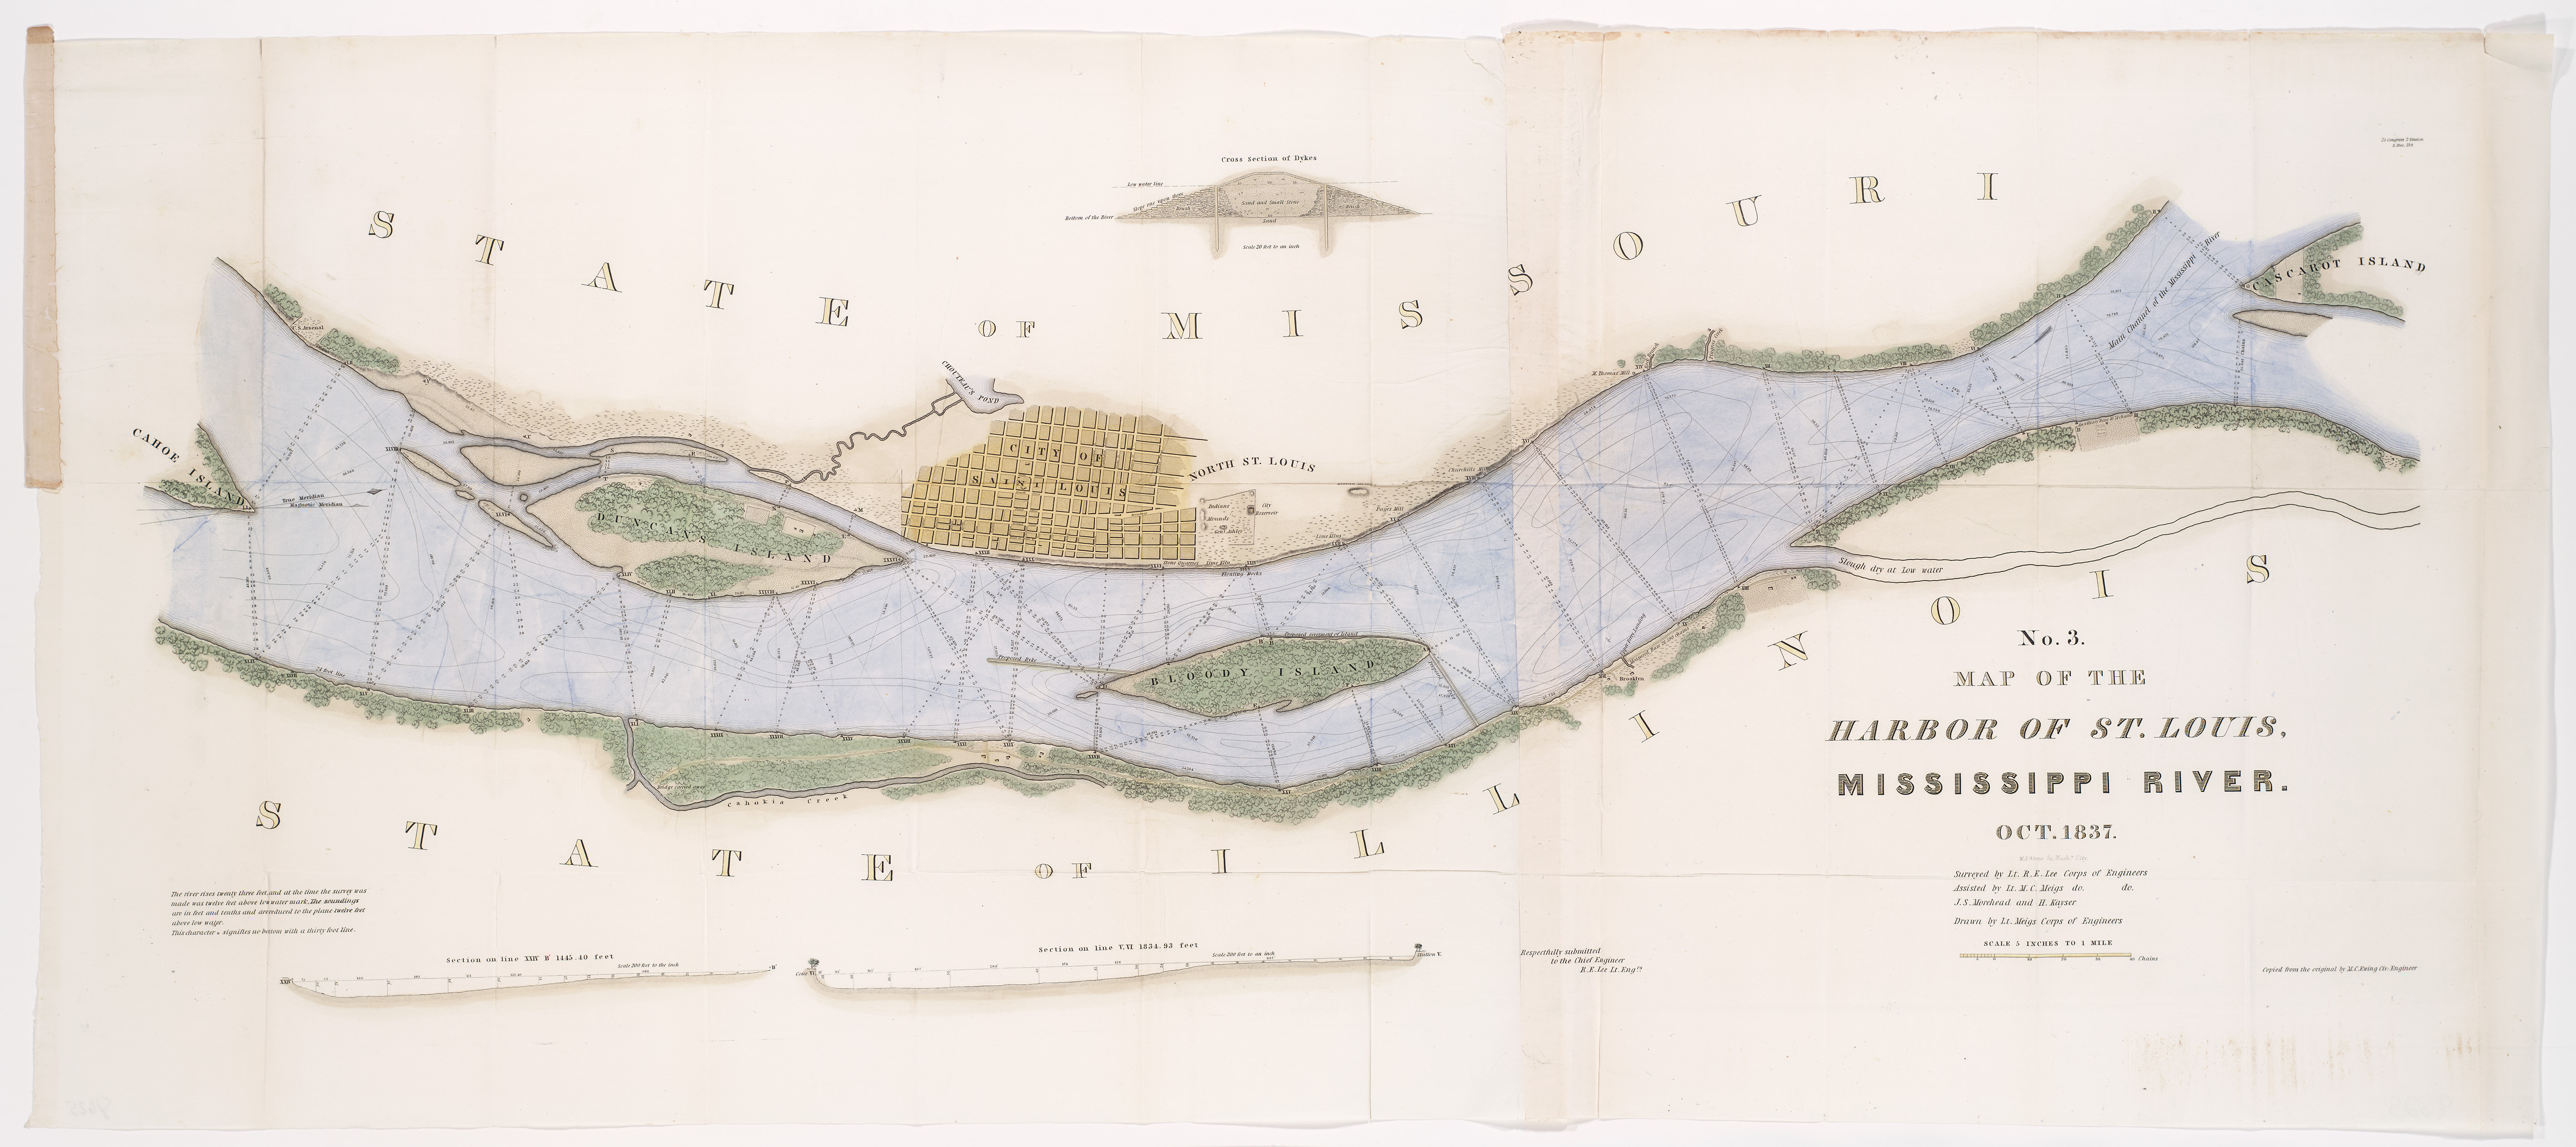 Robert E Lees Map Of The Harbor Of St Louis Jefferson - Map of us st louis